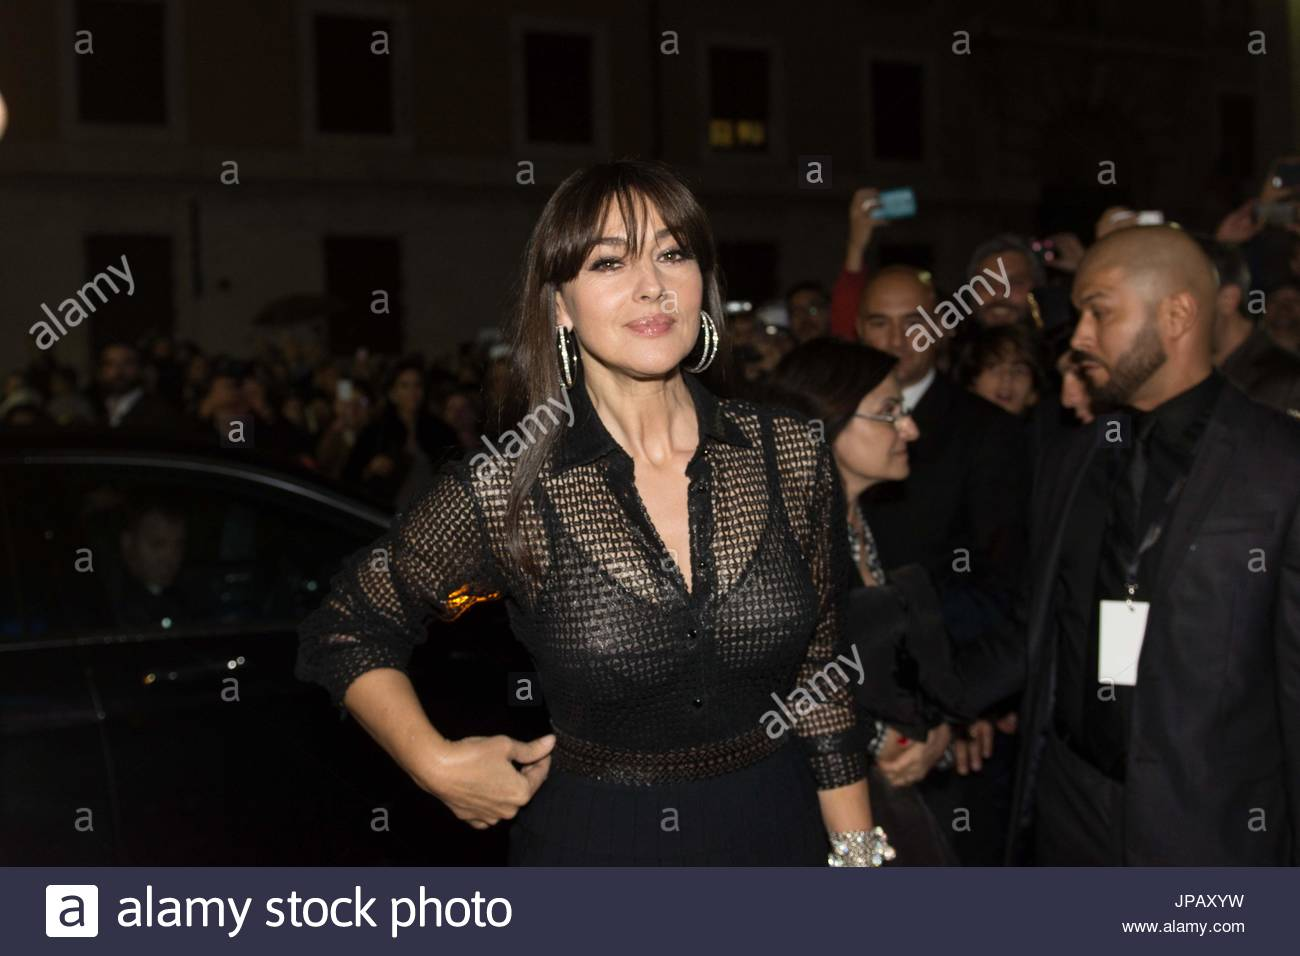 Monica Bellucci. Preview Of The Film Spectre With Cristof